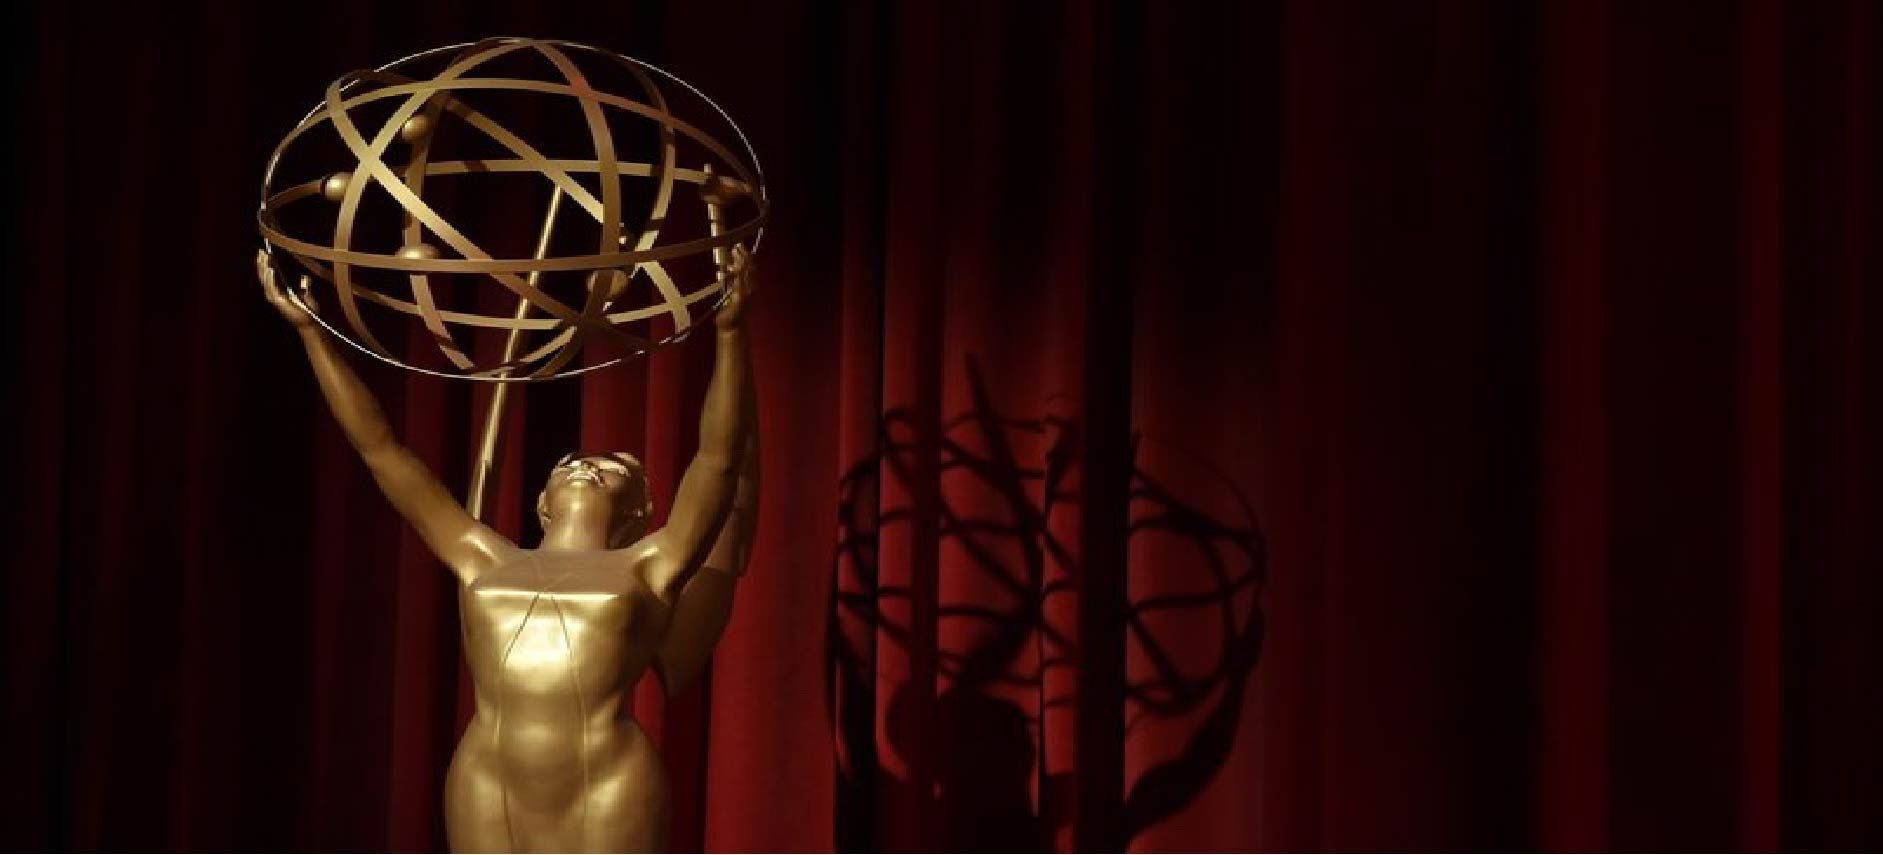 Emmy show will include $2.8M donation to fight child hunger